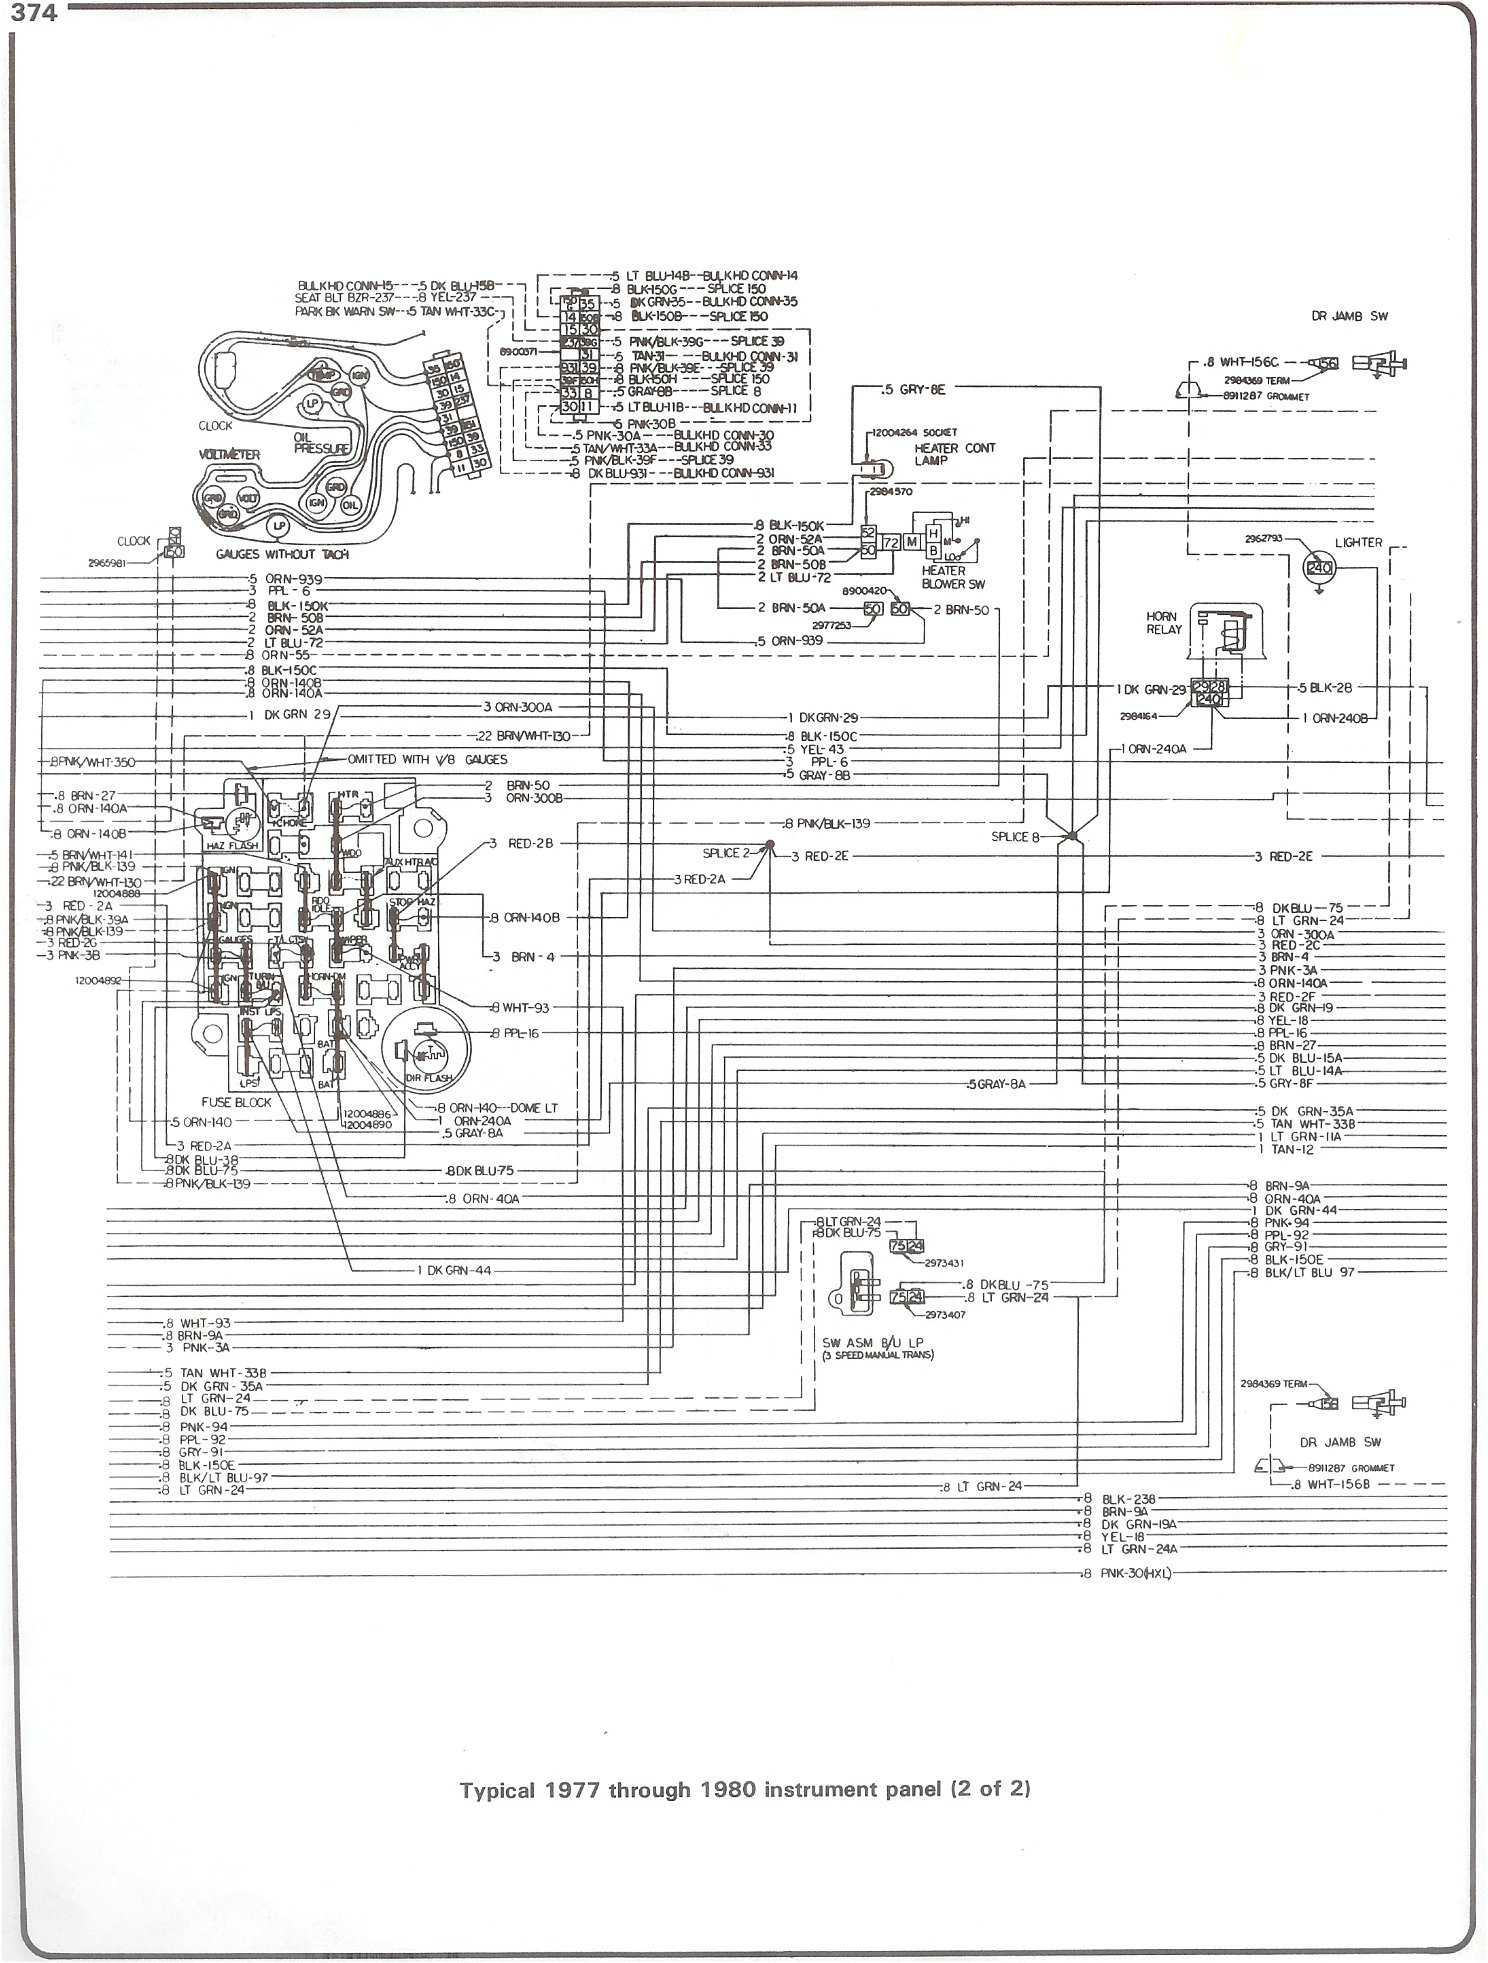 complete 73 87 wiring diagrams GMC Panel Fuse Block  Lexus Fuse Diagram 2006 Yukon Fuse Diagram International Fuse Diagram